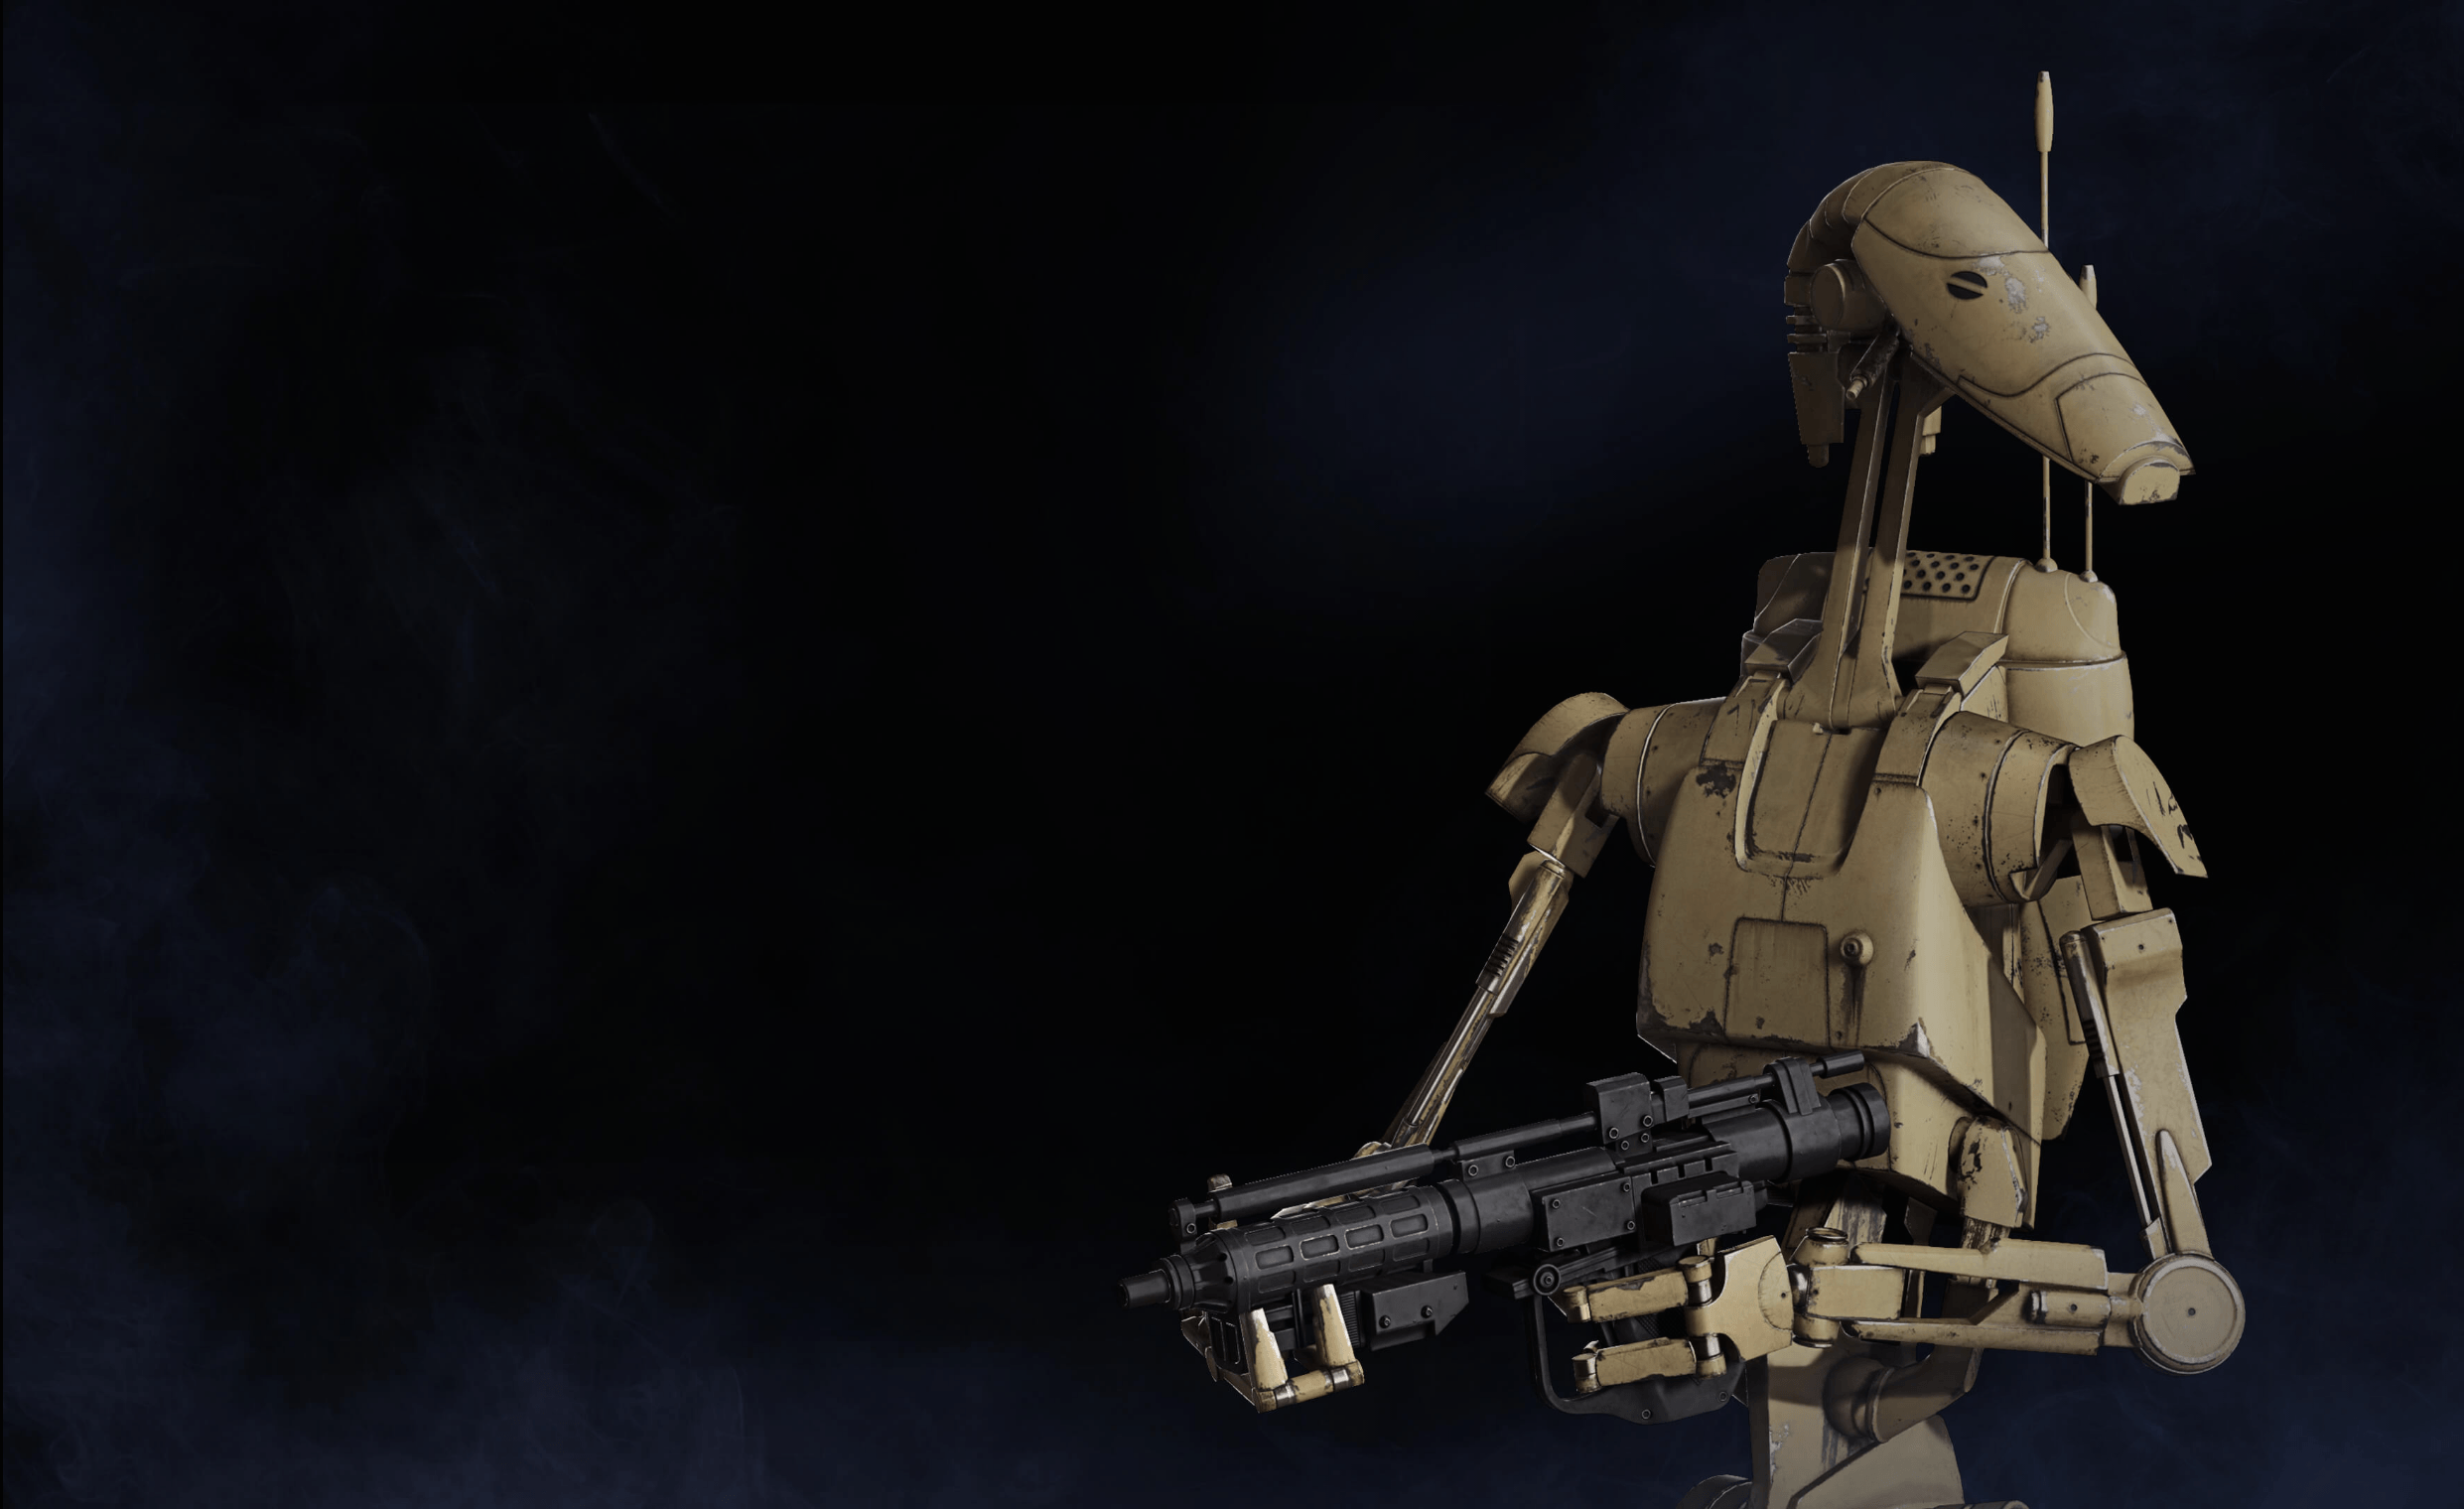 Separatist Droid Army Wallpapers Wallpaper Cave